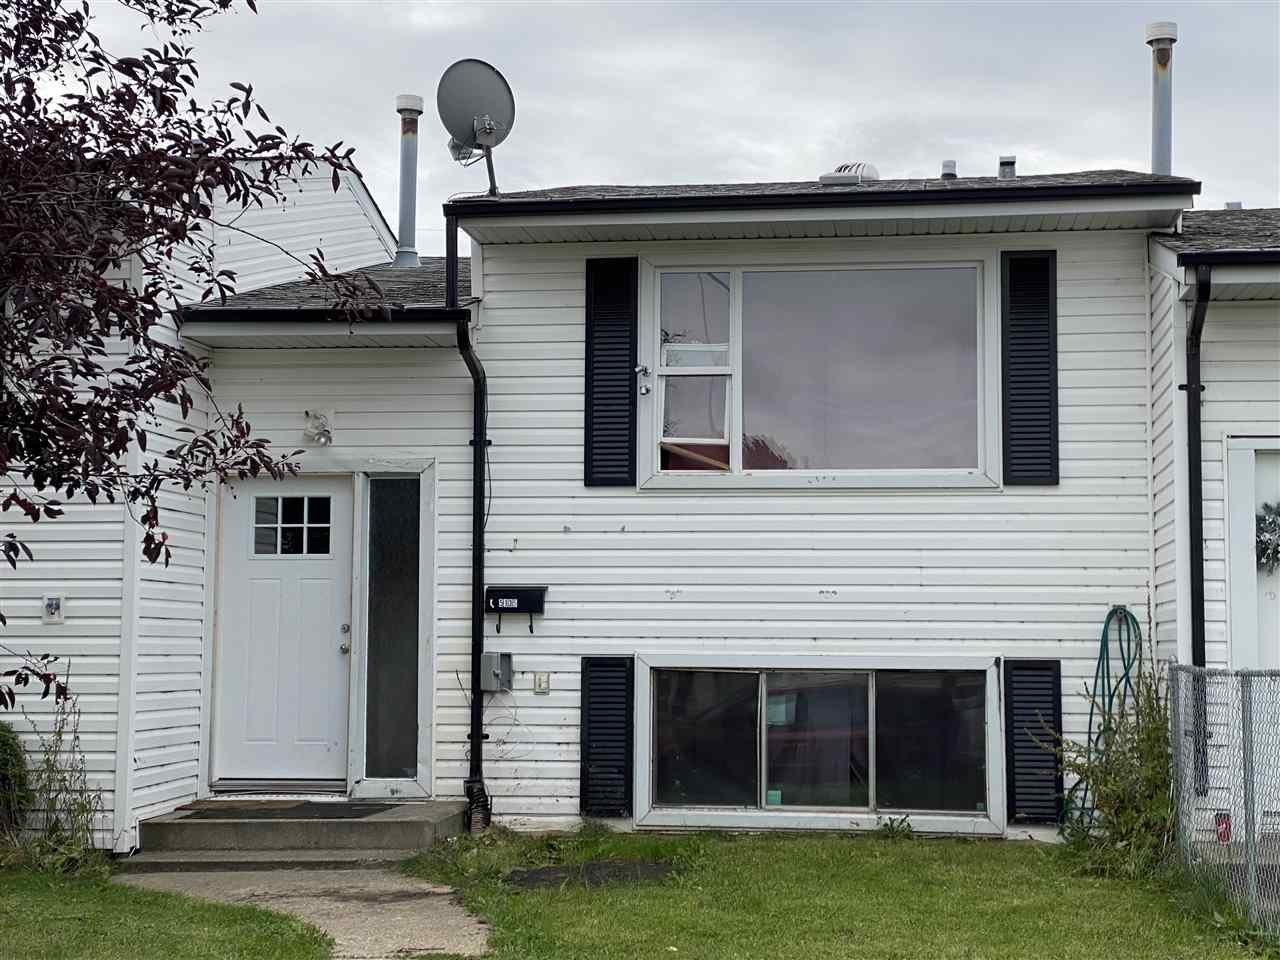 Main Photo: 5135 55 Avenue: Wetaskiwin Attached Home for sale : MLS®# E4213307